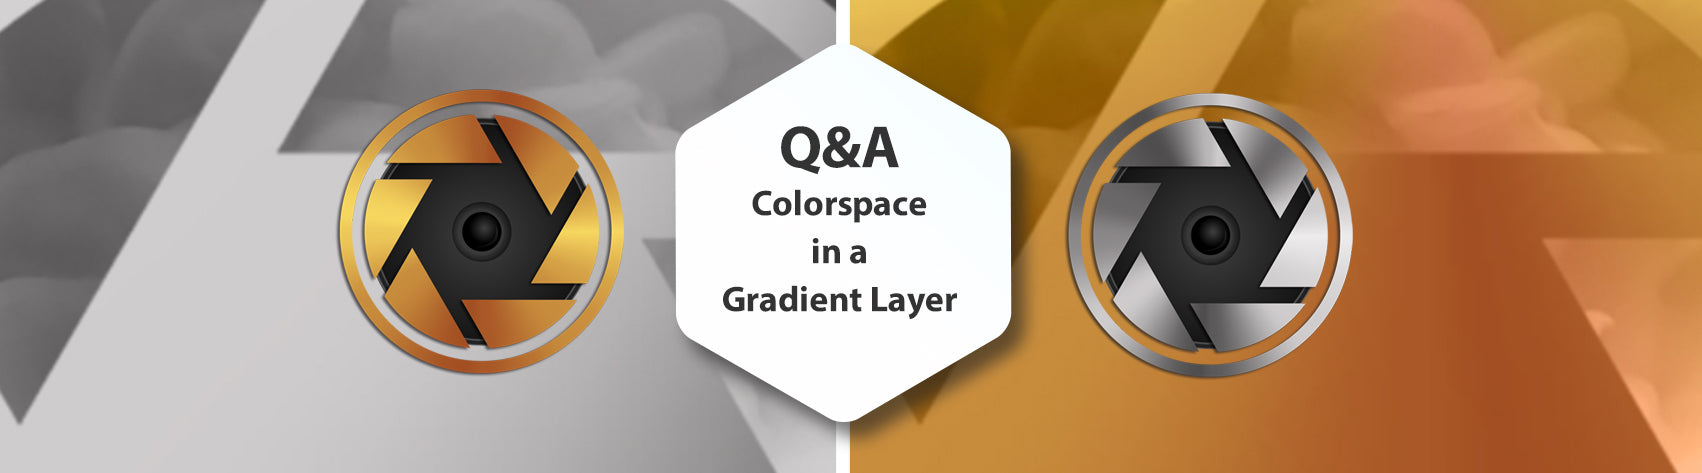 Q&A - Colorspace In A Gradient